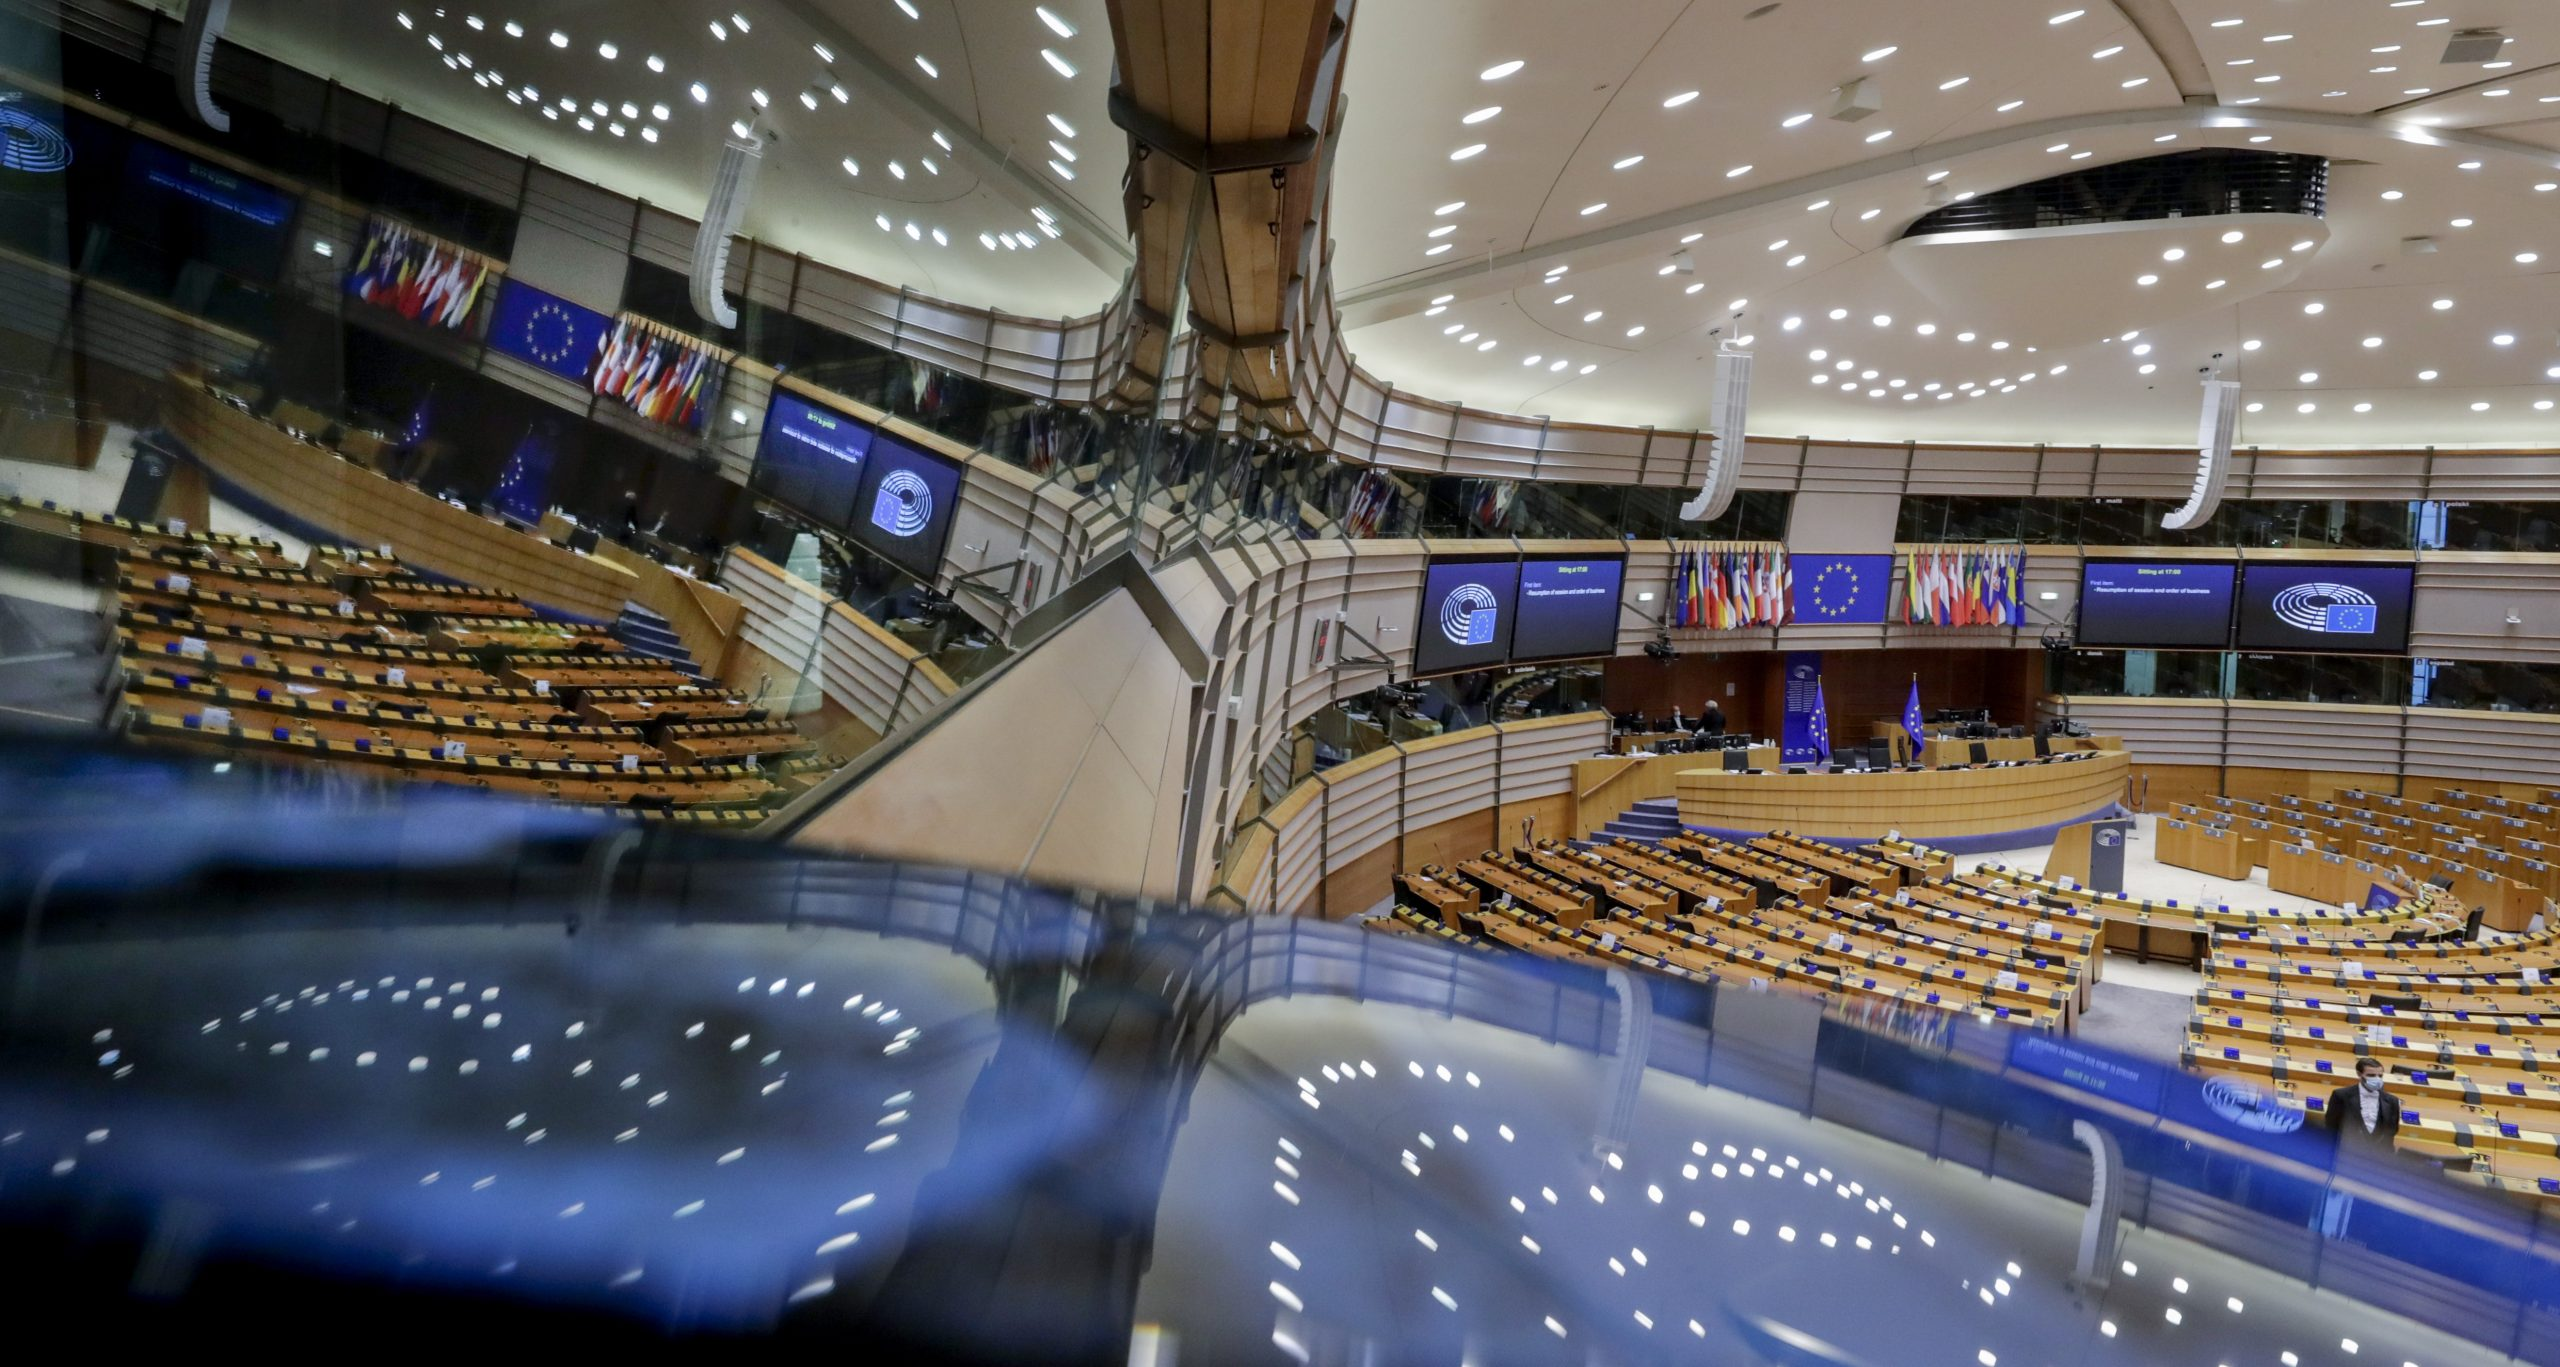 EP Says Hungary Anti-paedophile Law in Breach of EU Values, Principles